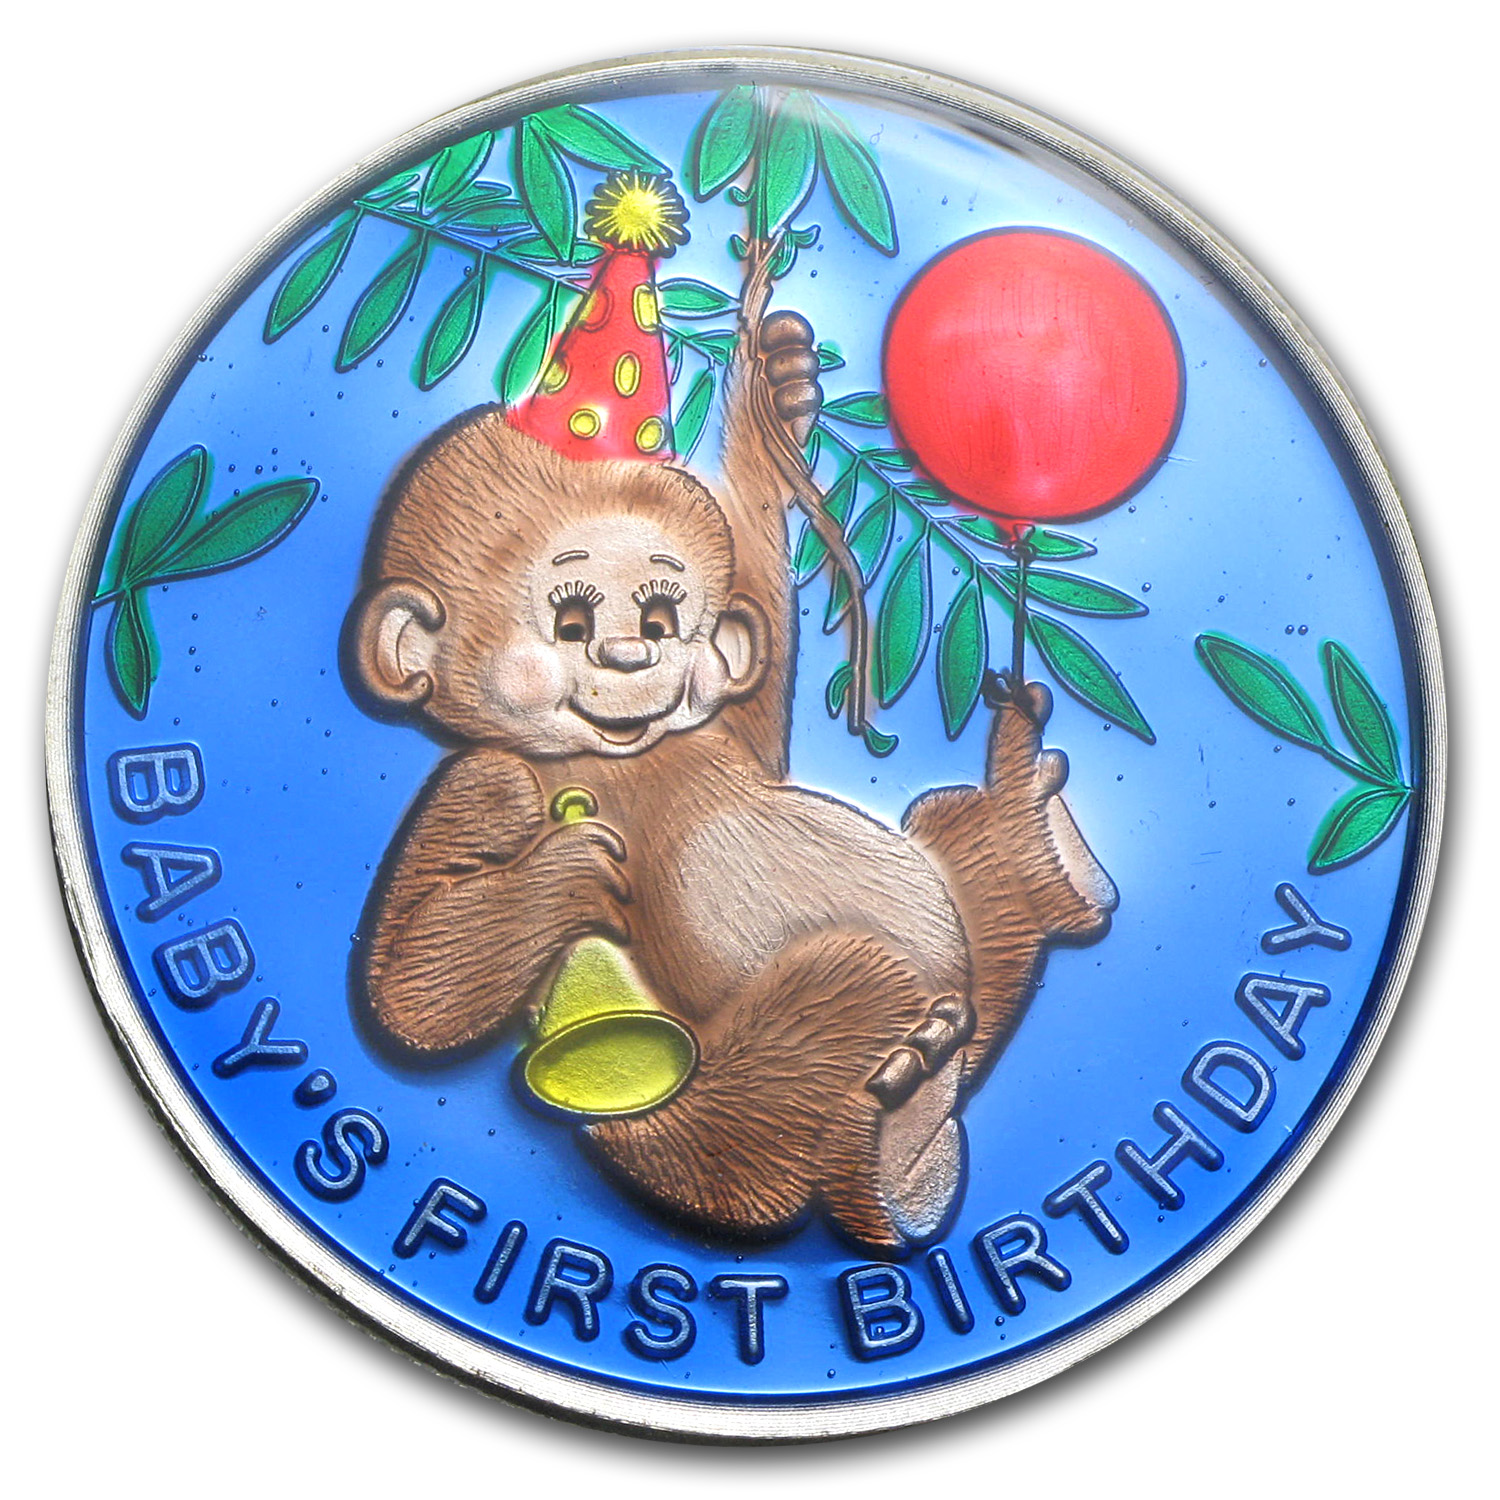 1 oz Silver Rounds - Baby's First Birthday Enameled (w/Box & Cap)